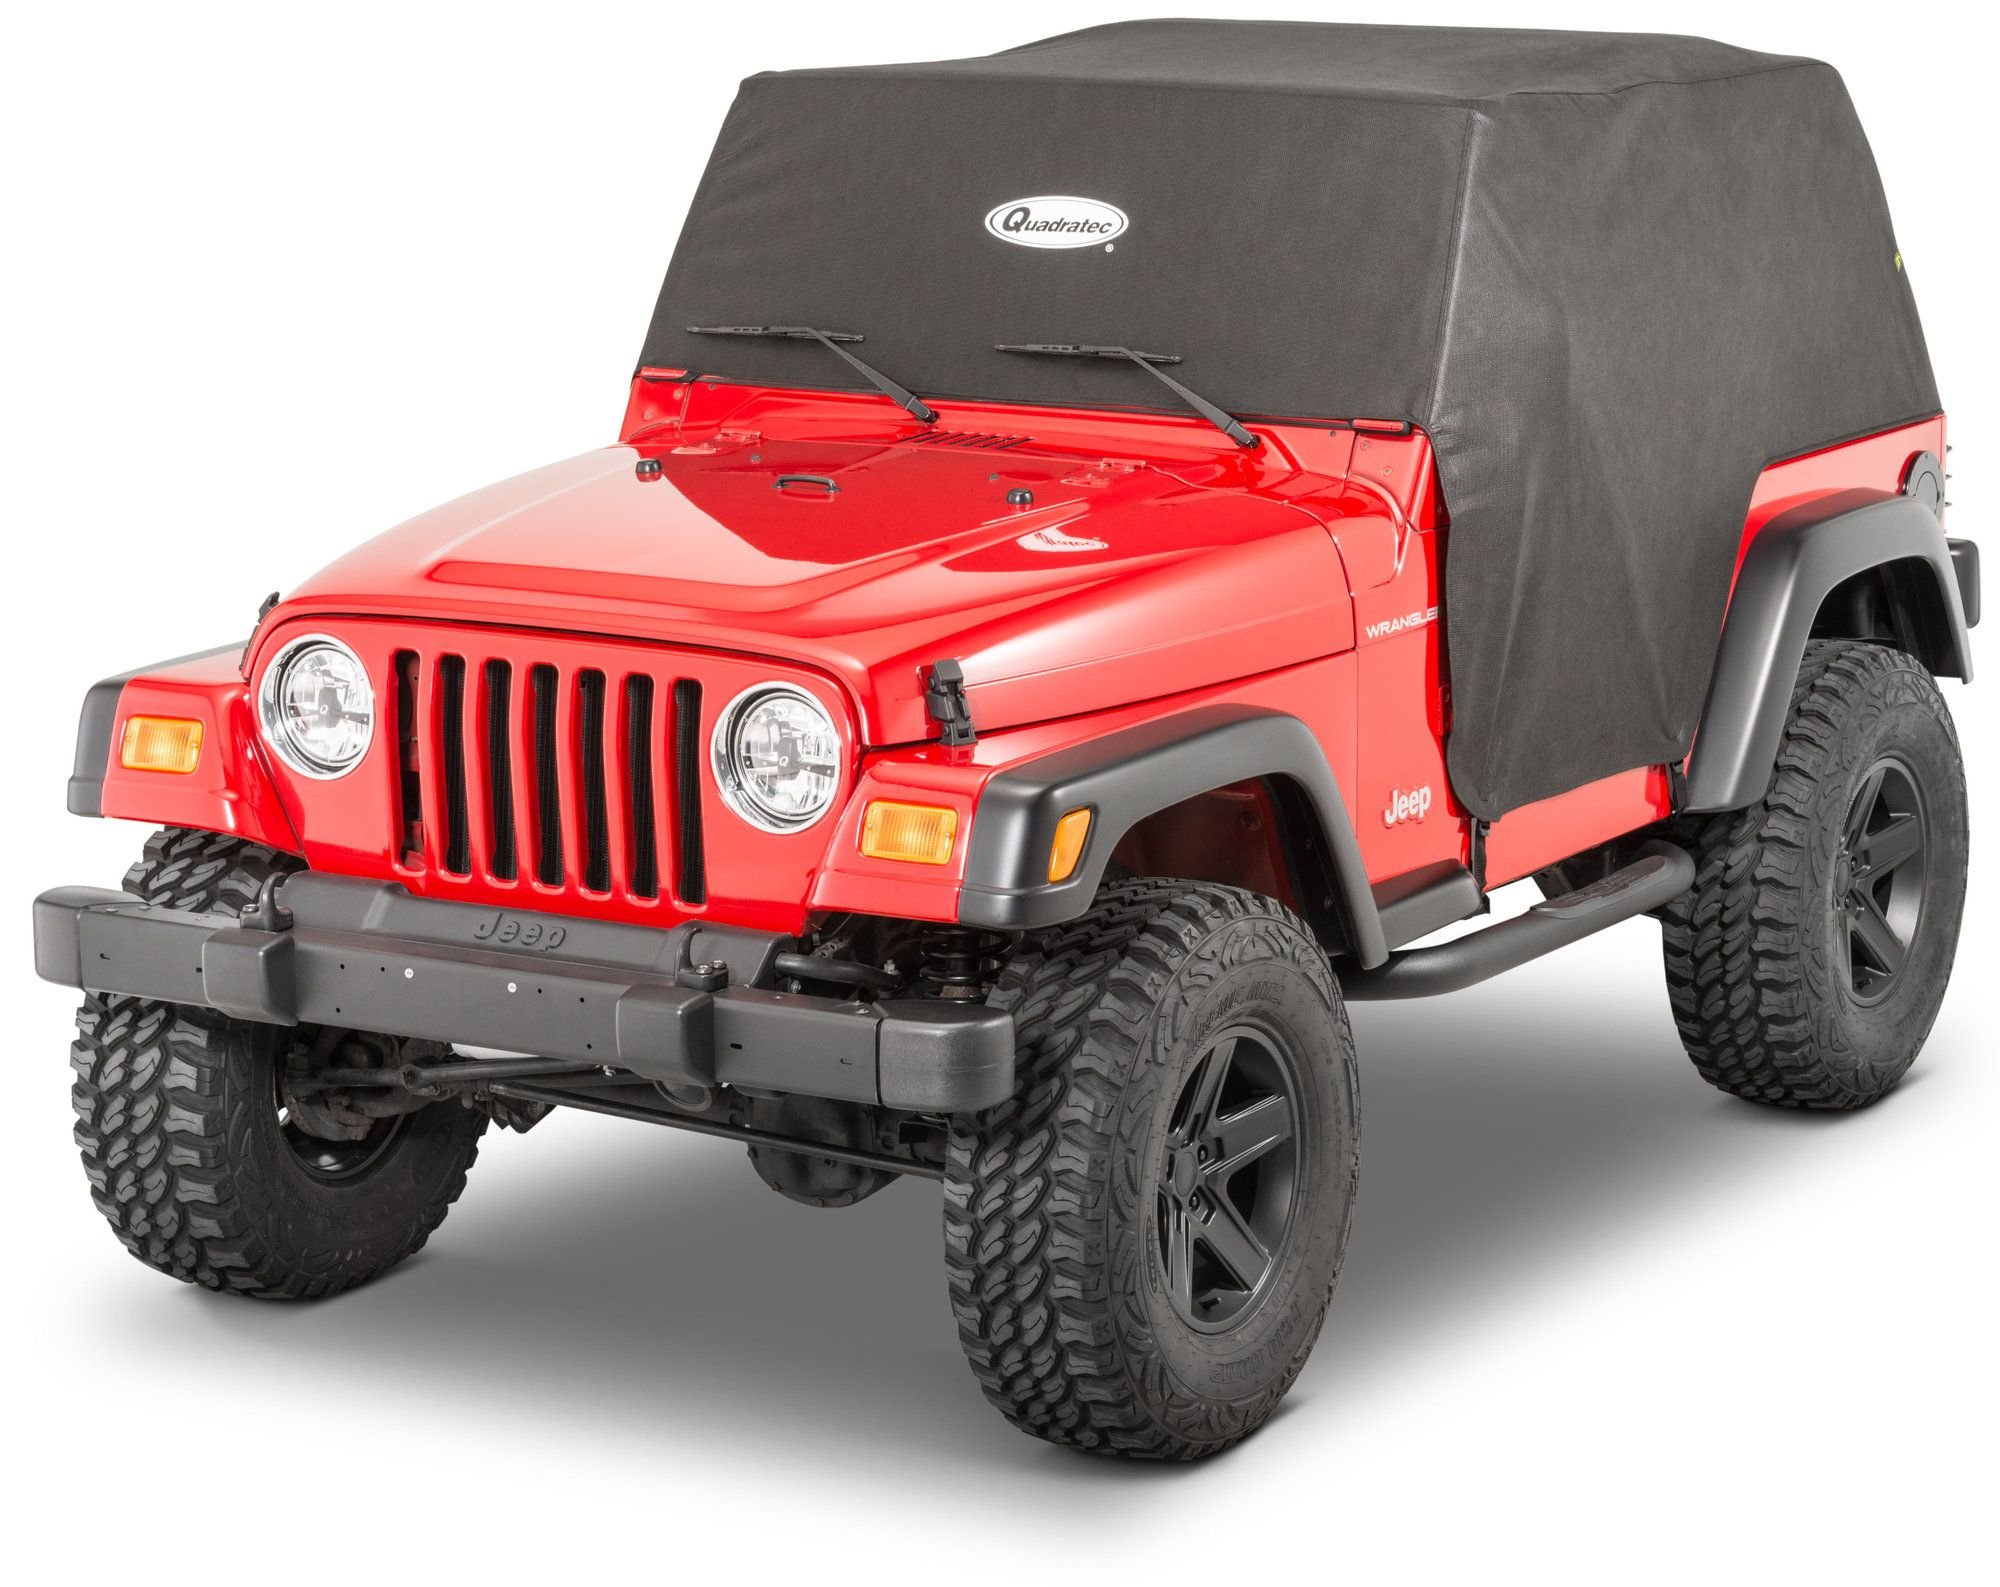 Softbond 5 Layer Cab Cover For 97 06 Jeep Wrangler Tj Jeep Wrangler Tj